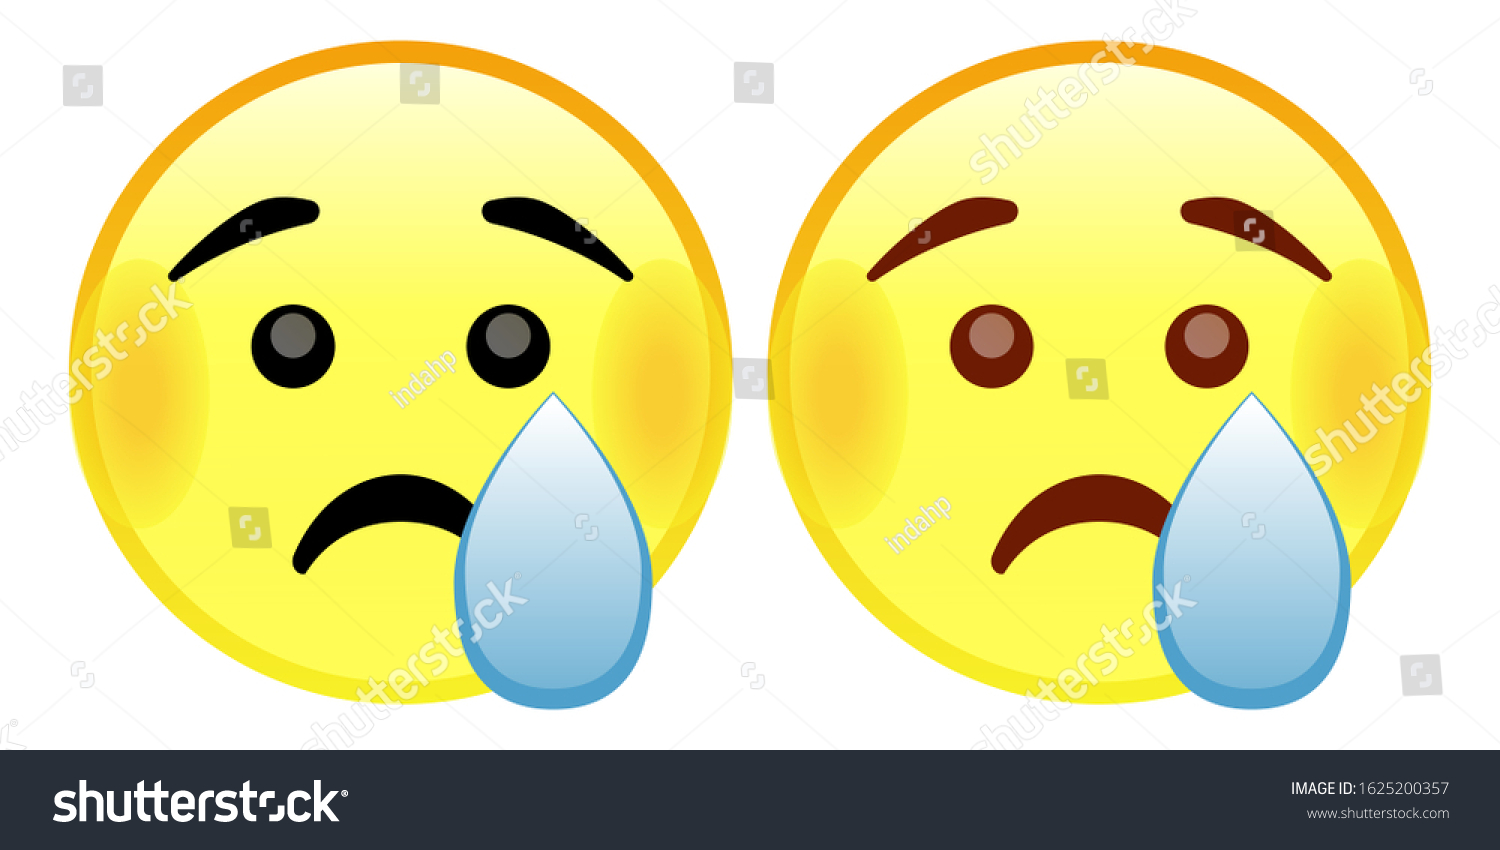 Crying Face Emoji Yellow Face Raised Stock Vector Royalty Free 1625200357 🤨 face with one eyebrow raised emoji. https www shutterstock com image vector crying face emoji yellow raised eyebrows 1625200357